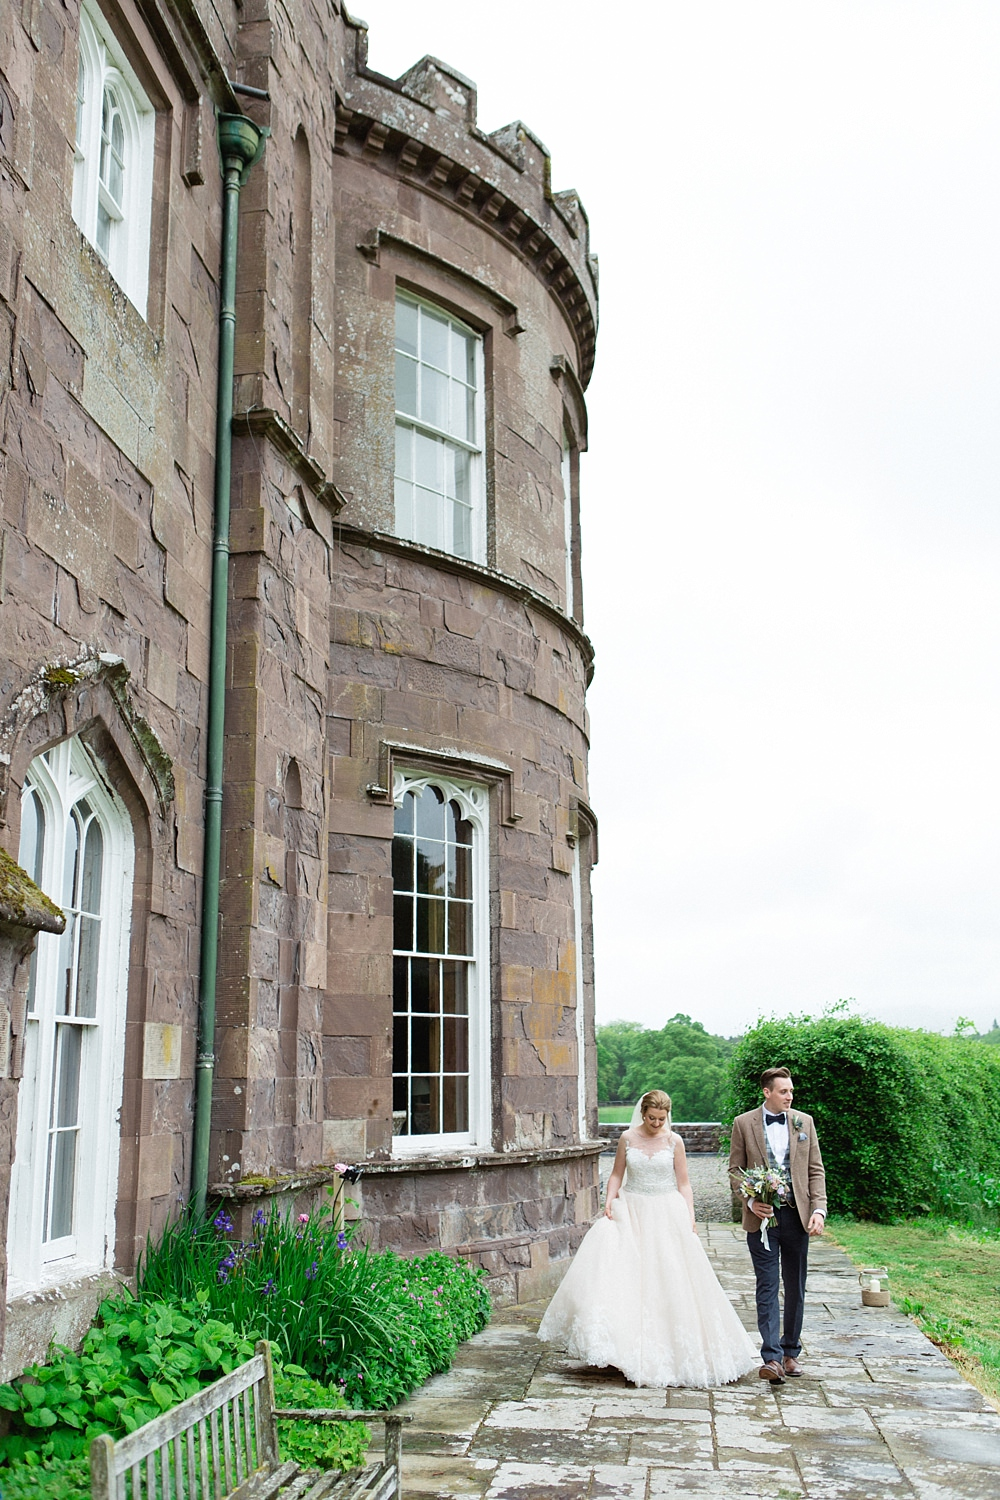 Chantal Lachance-Gibson Photography,Fine Art Wedding Photographers,The Gibsons,creative wedding photographers glasgow,husband and wife photographers scotland,natural wedding photographers,romantic photographers Scotland,shabby chique wedding,strathallan wedding,